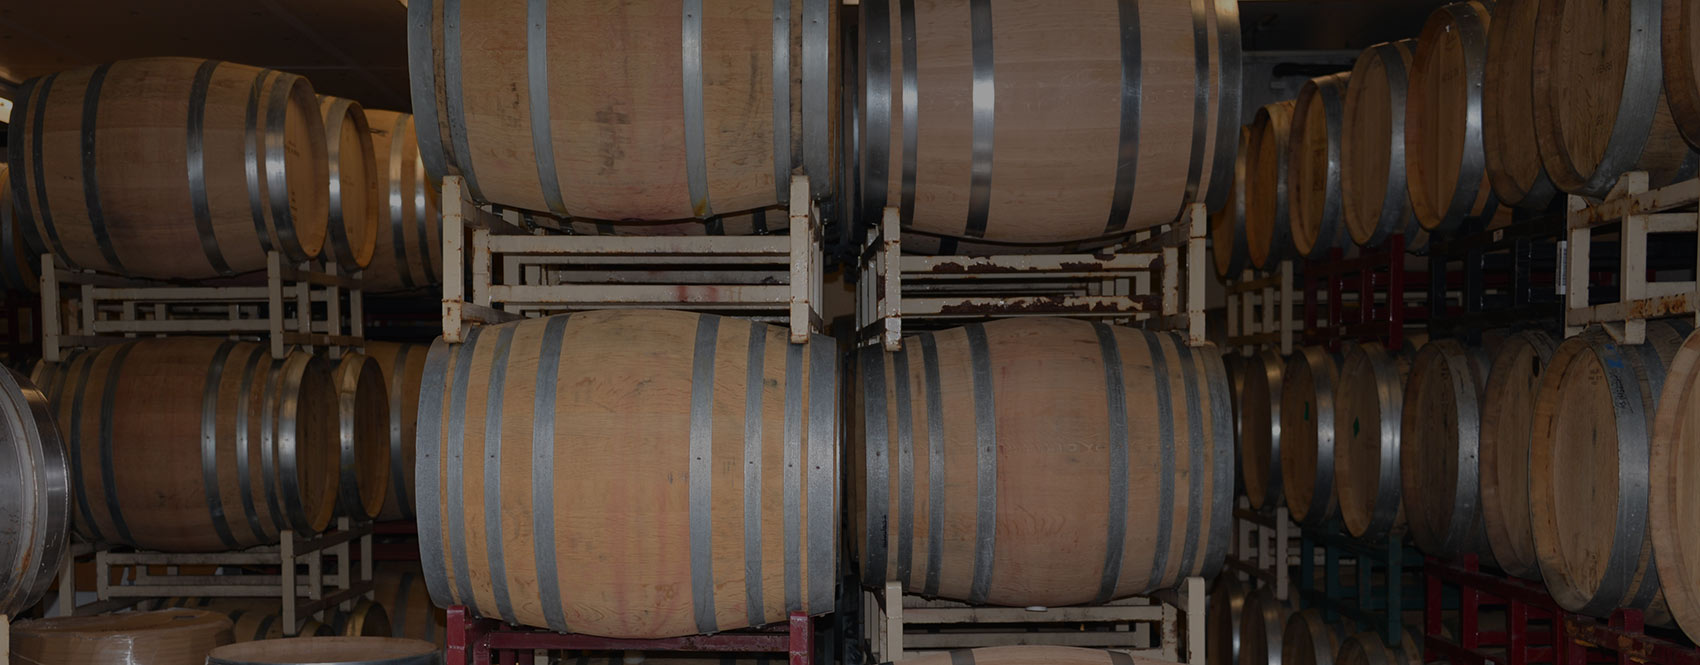 Barrels stacked on racks